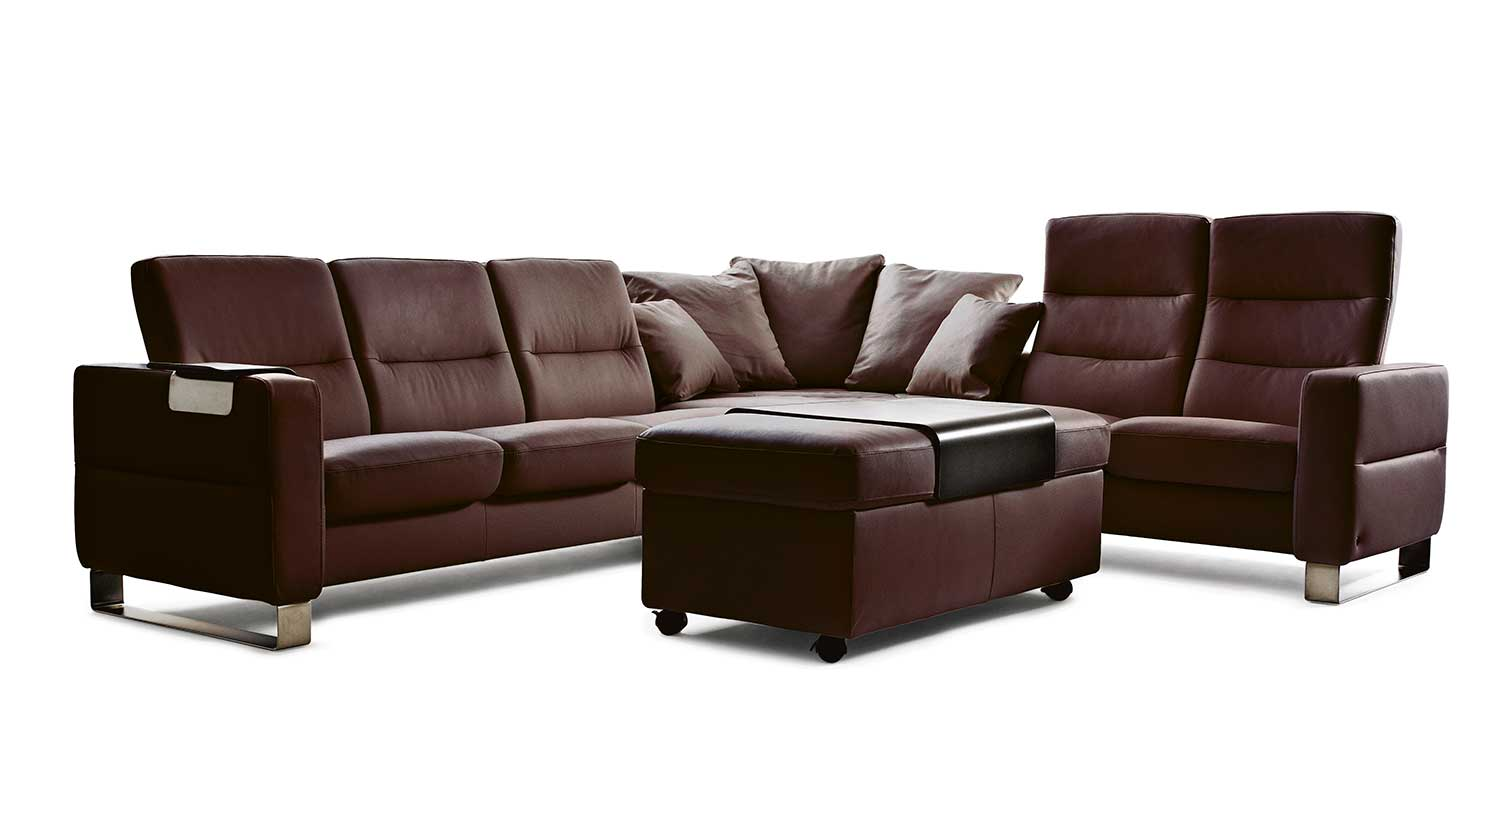 circle furniture wave stressless sectional ekornes sofas circle furniture. Black Bedroom Furniture Sets. Home Design Ideas